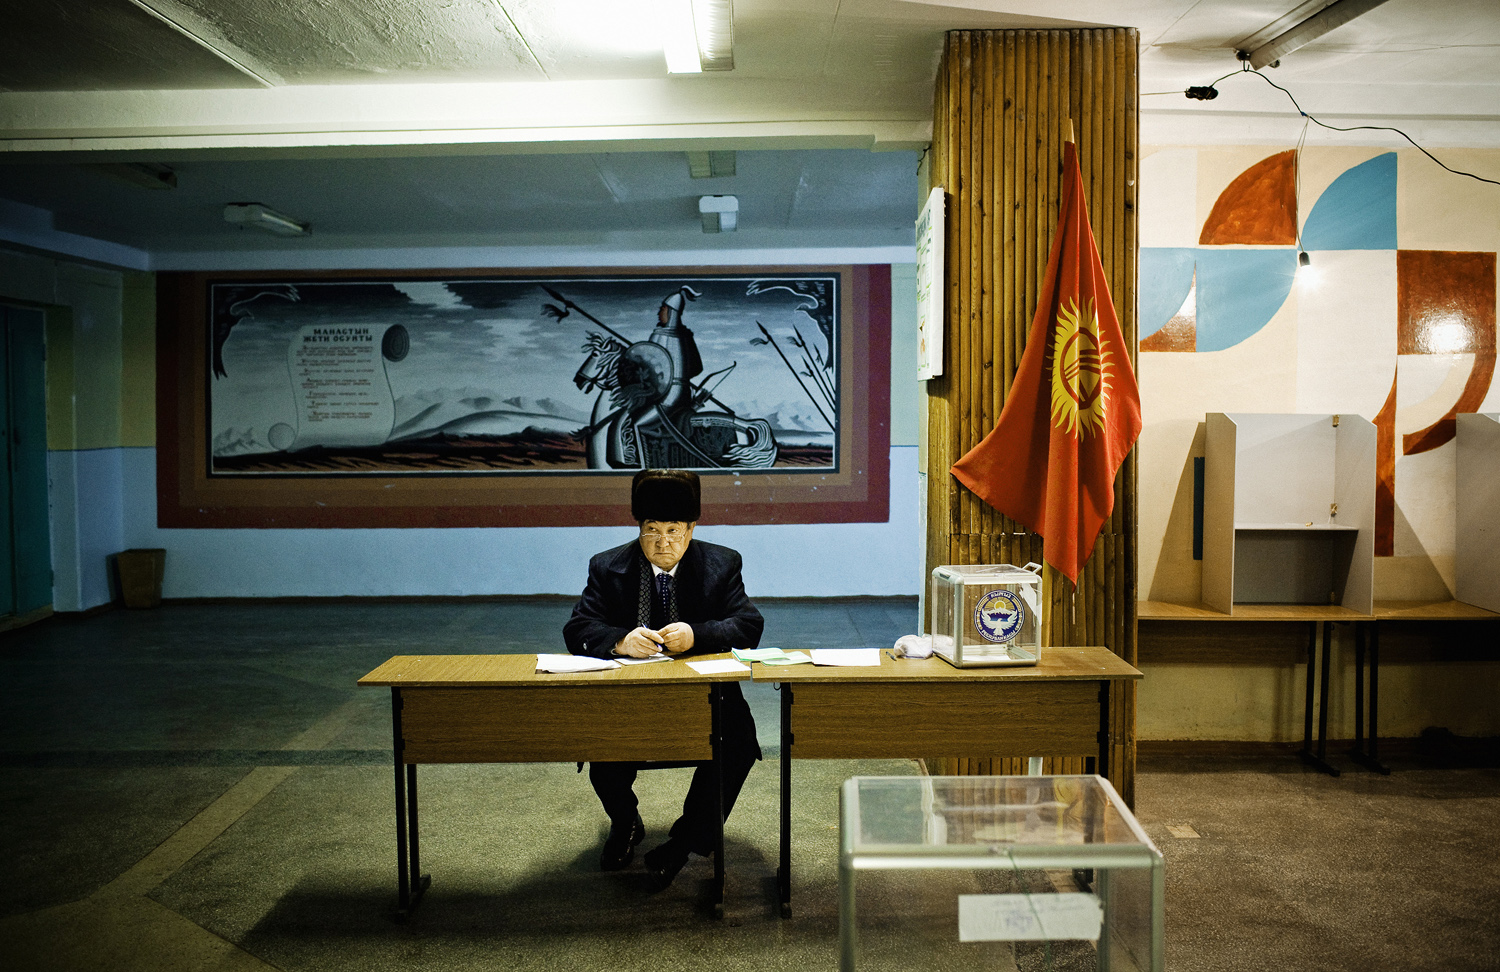 2007. A parliamentary election official oversees voting in a village outside Bishkek. Some international election observers noted a number of voting irregularities.